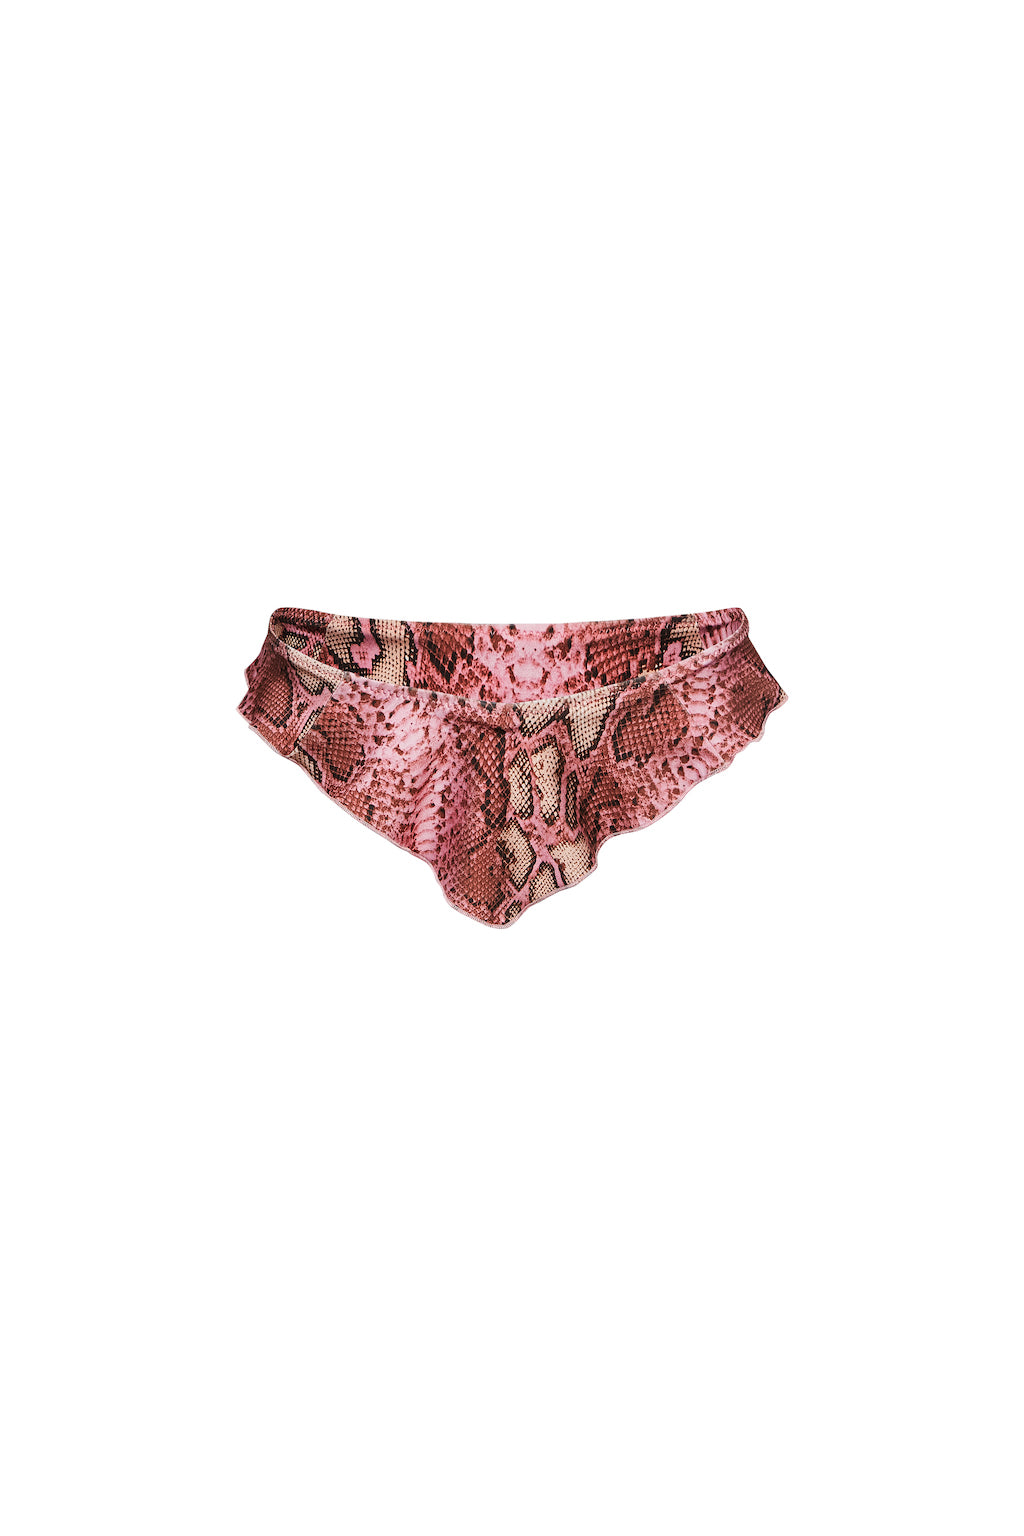 Hanalei Bottom (Pink Snake)